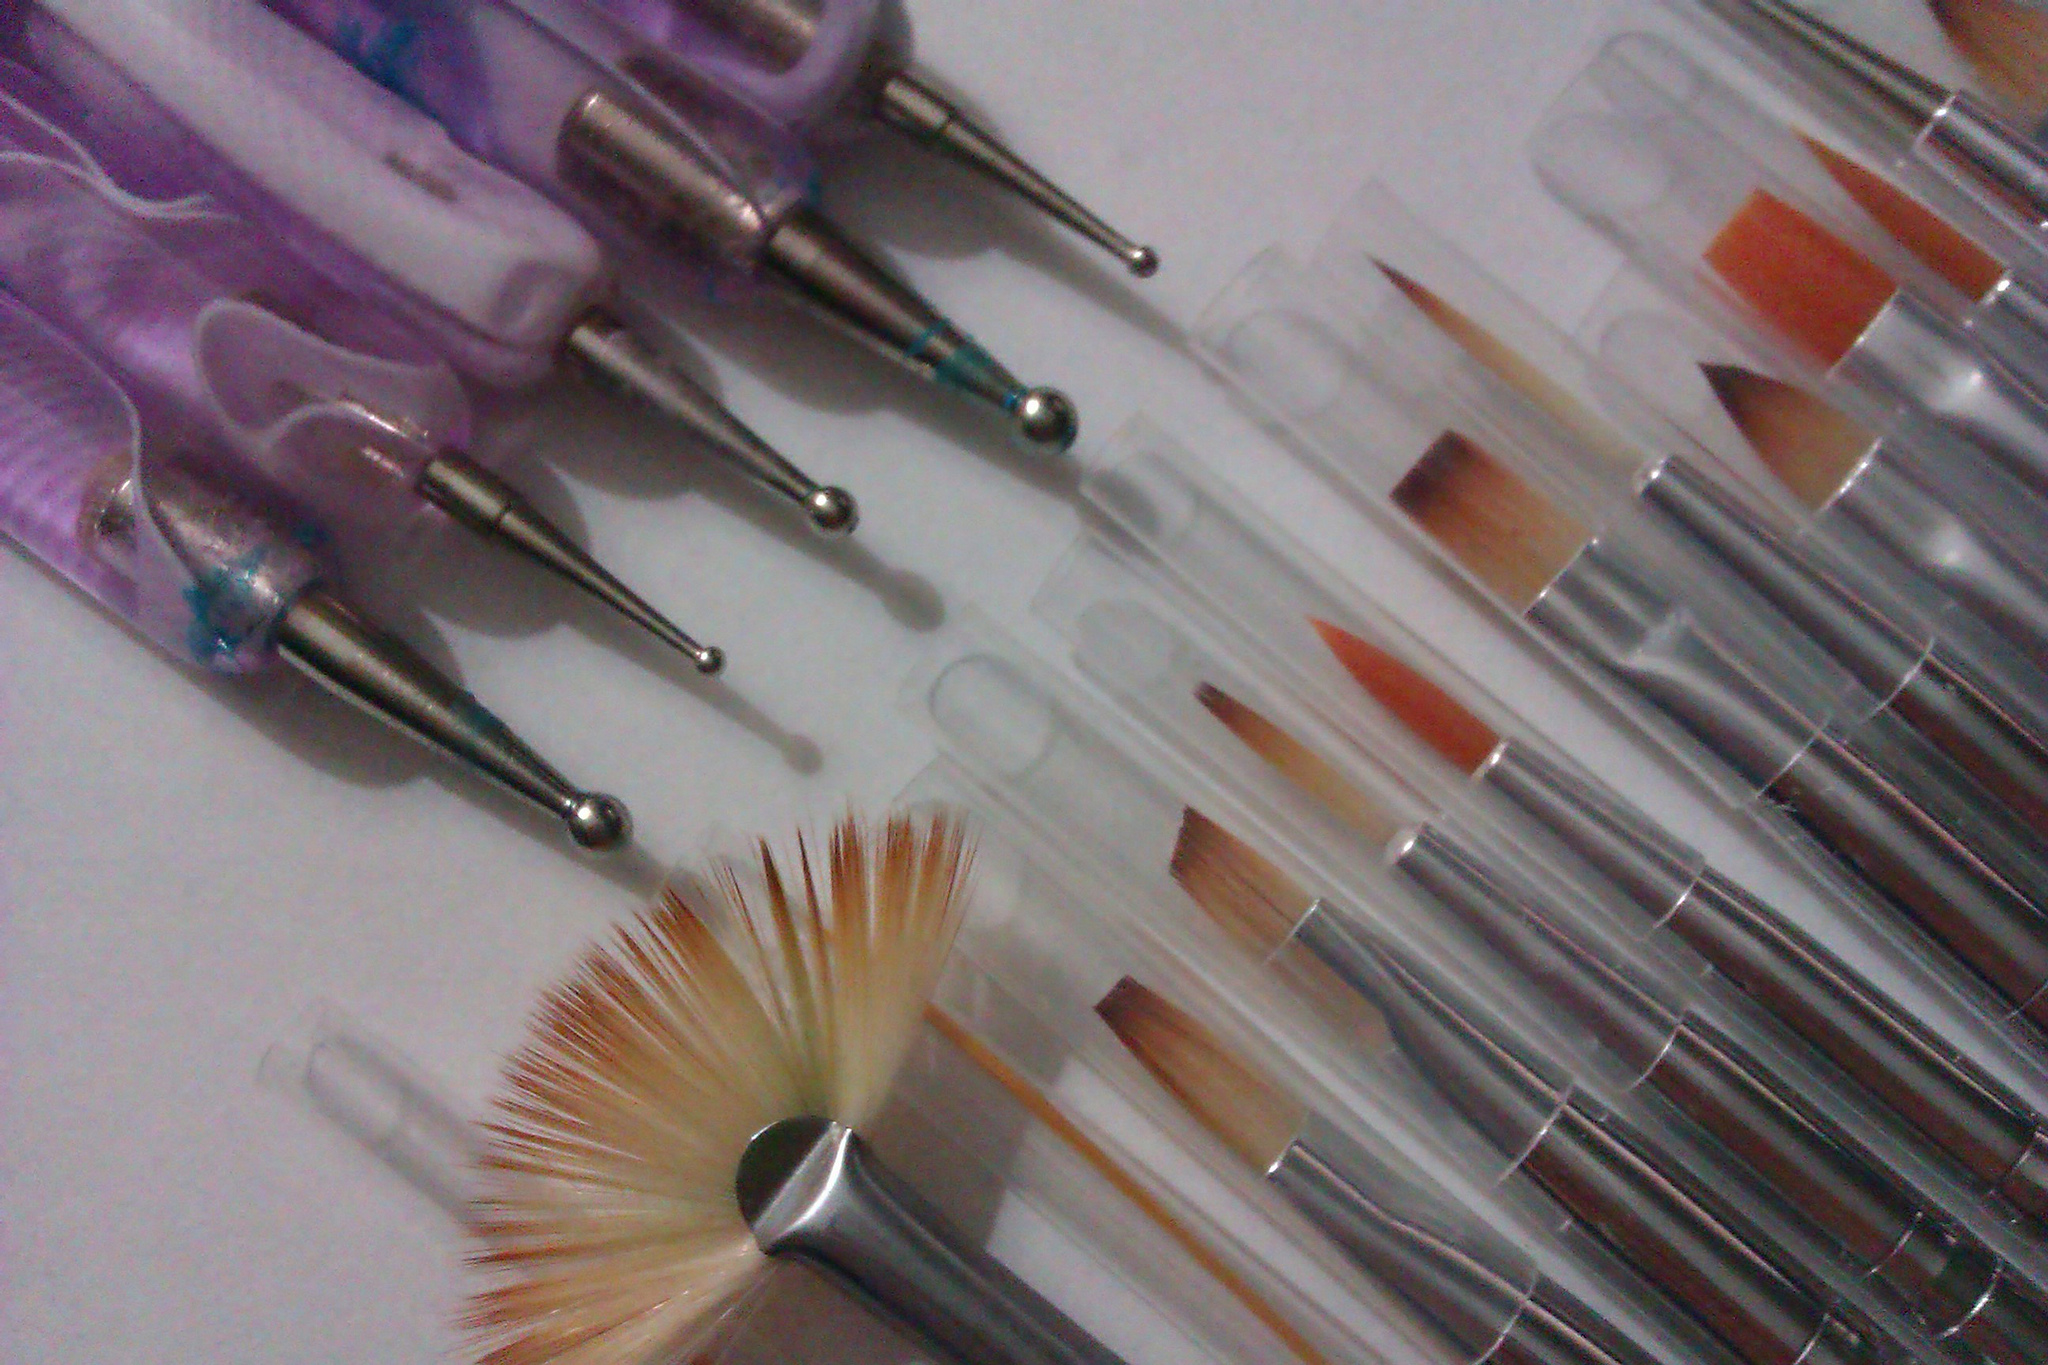 File:Nail art kit (1).jpg - Wikimedia Commons